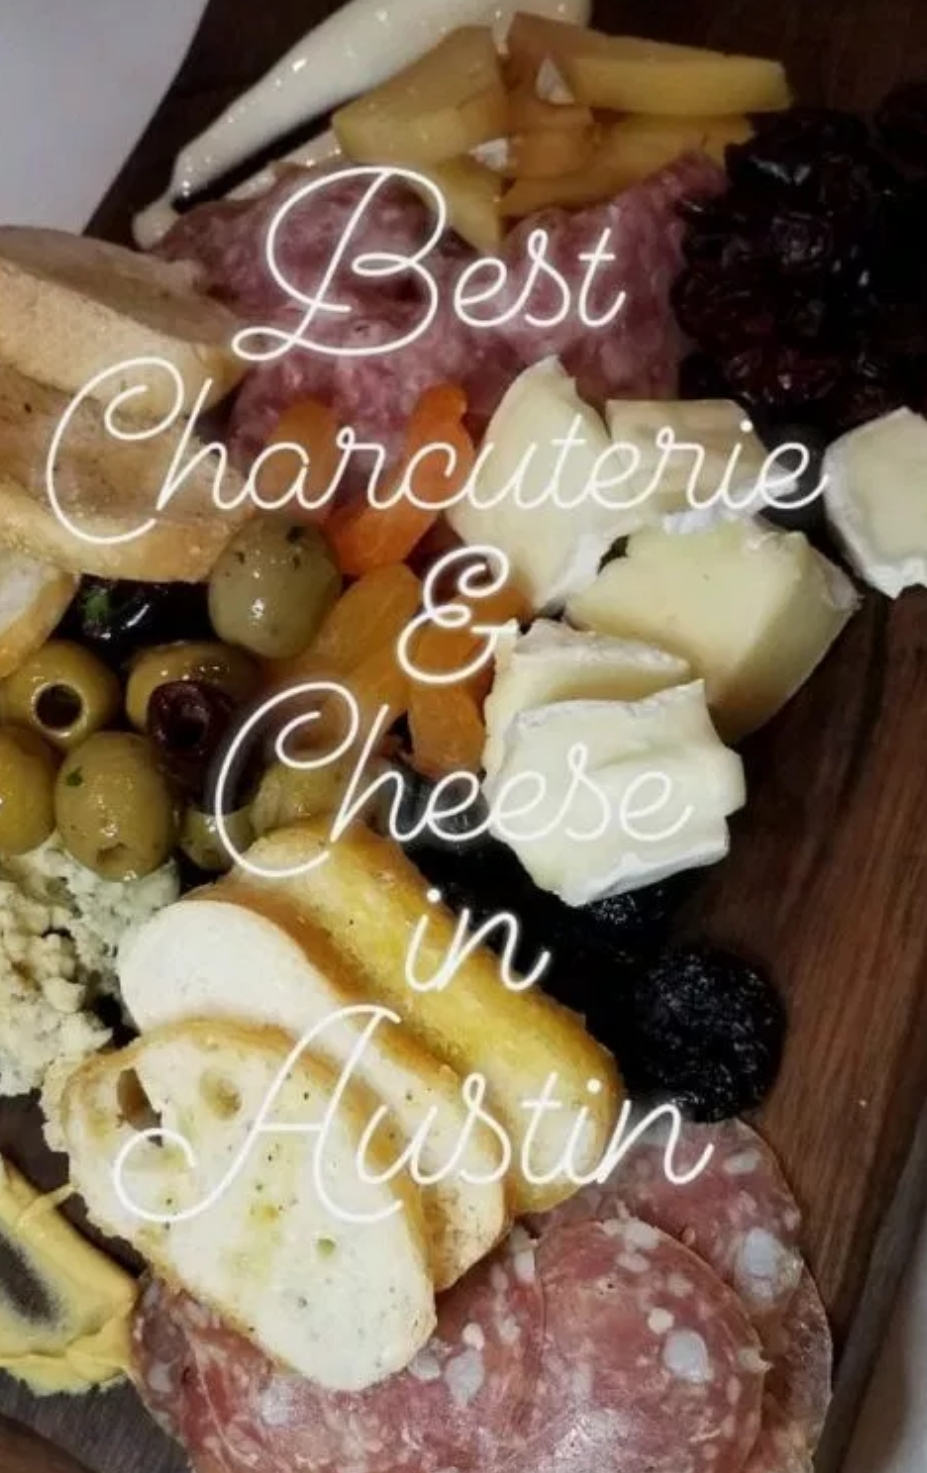 Best Charcuterie & Cheese in Austin